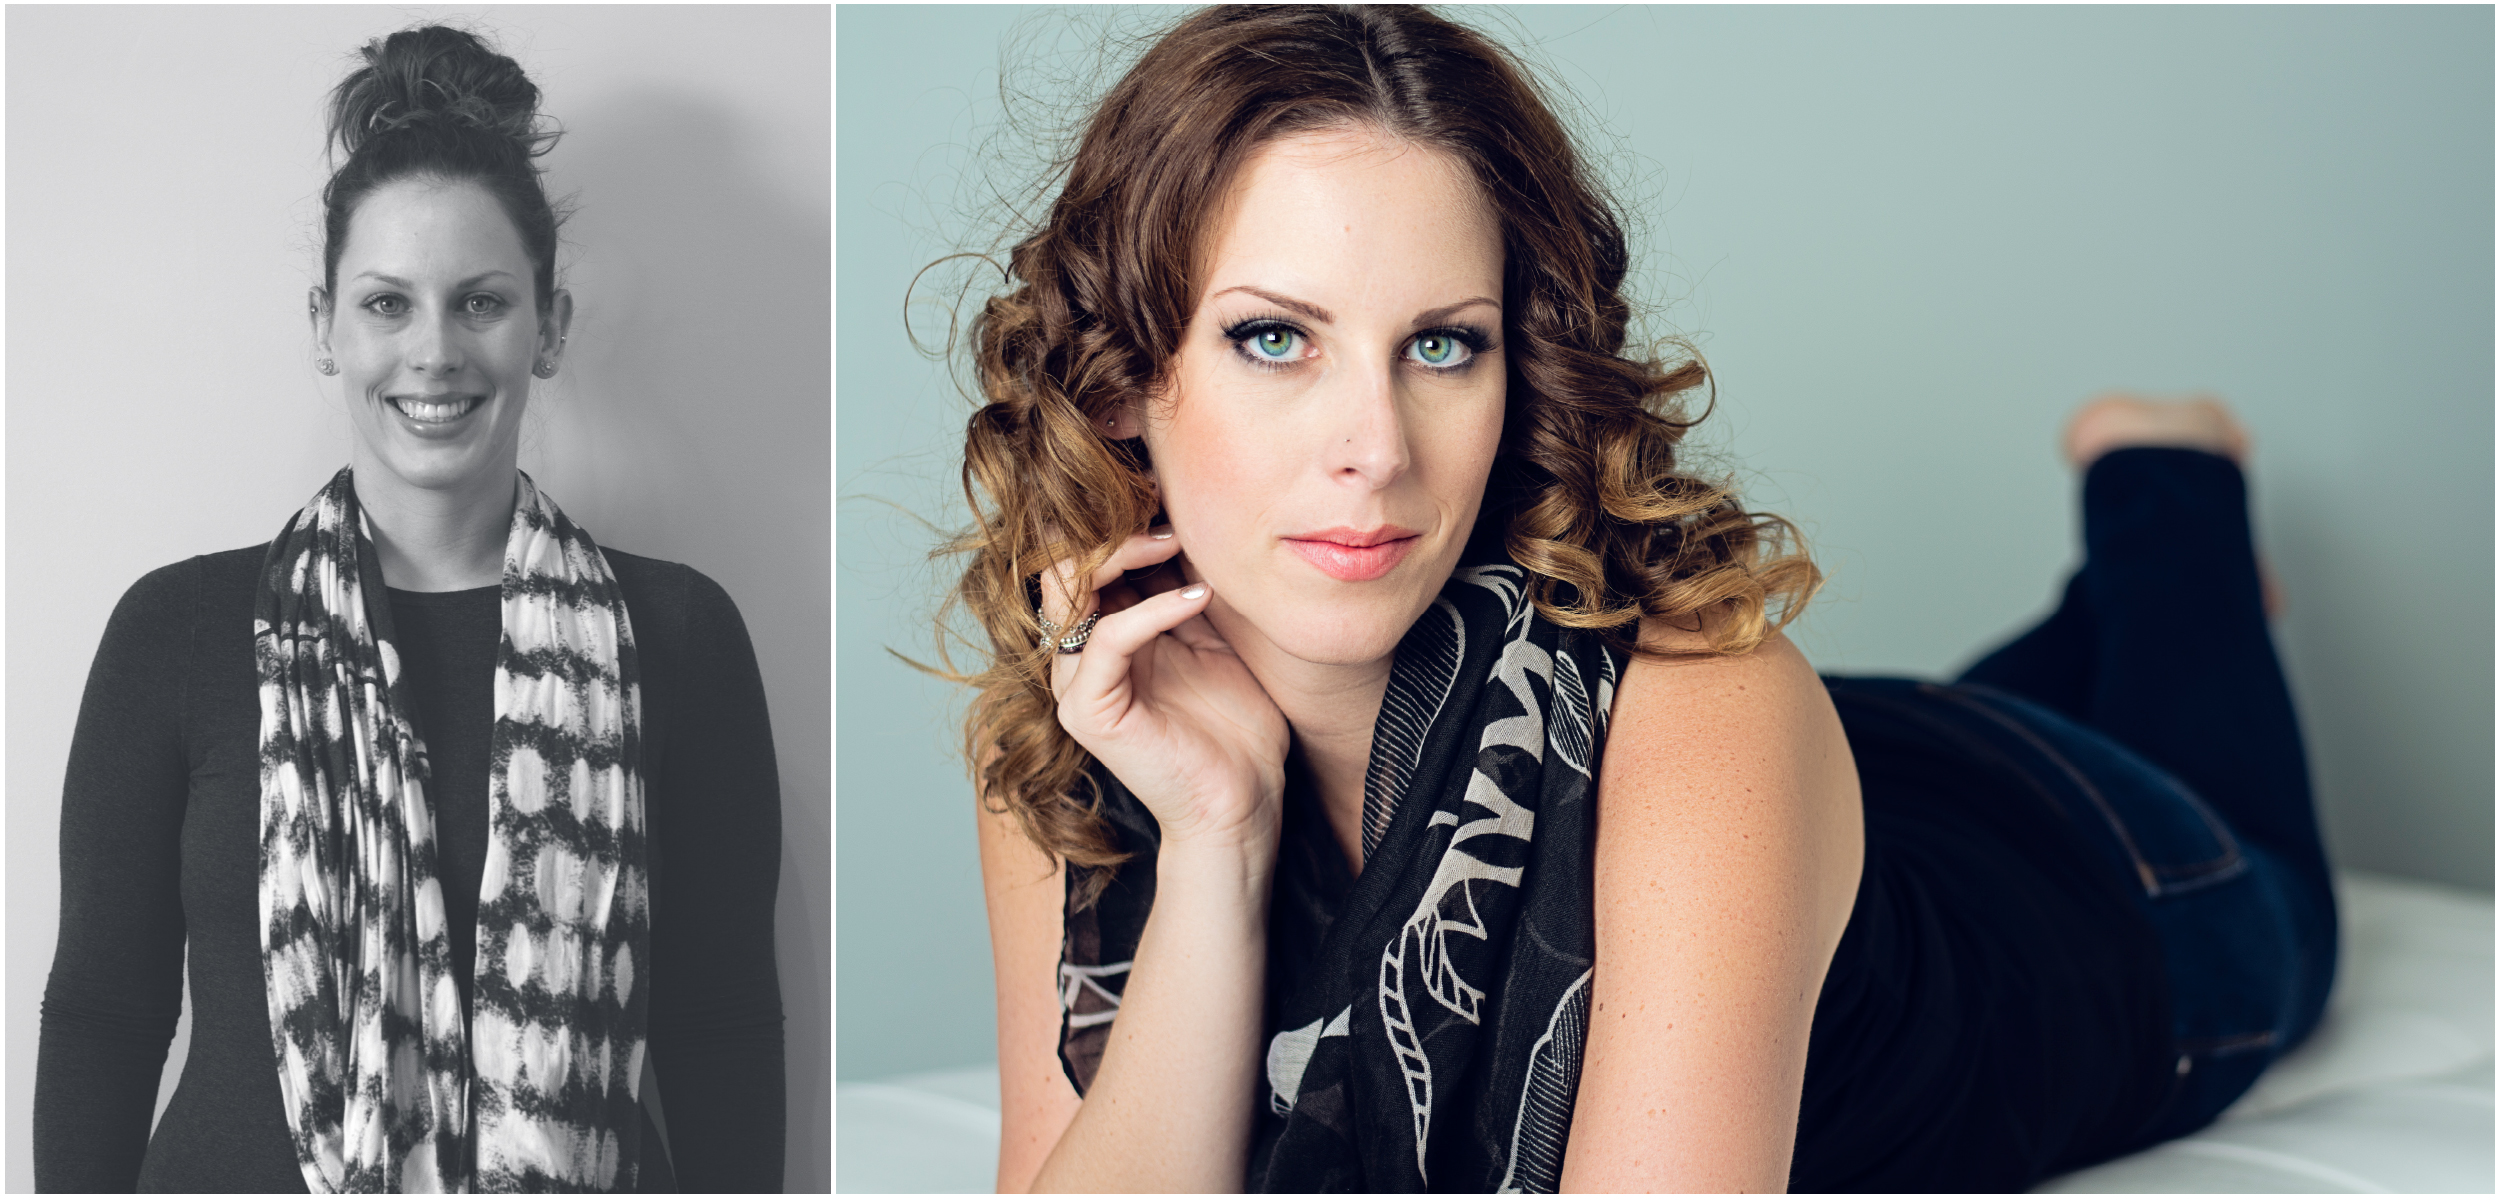 Before and After Portrait Photography by Friday Design + Photography